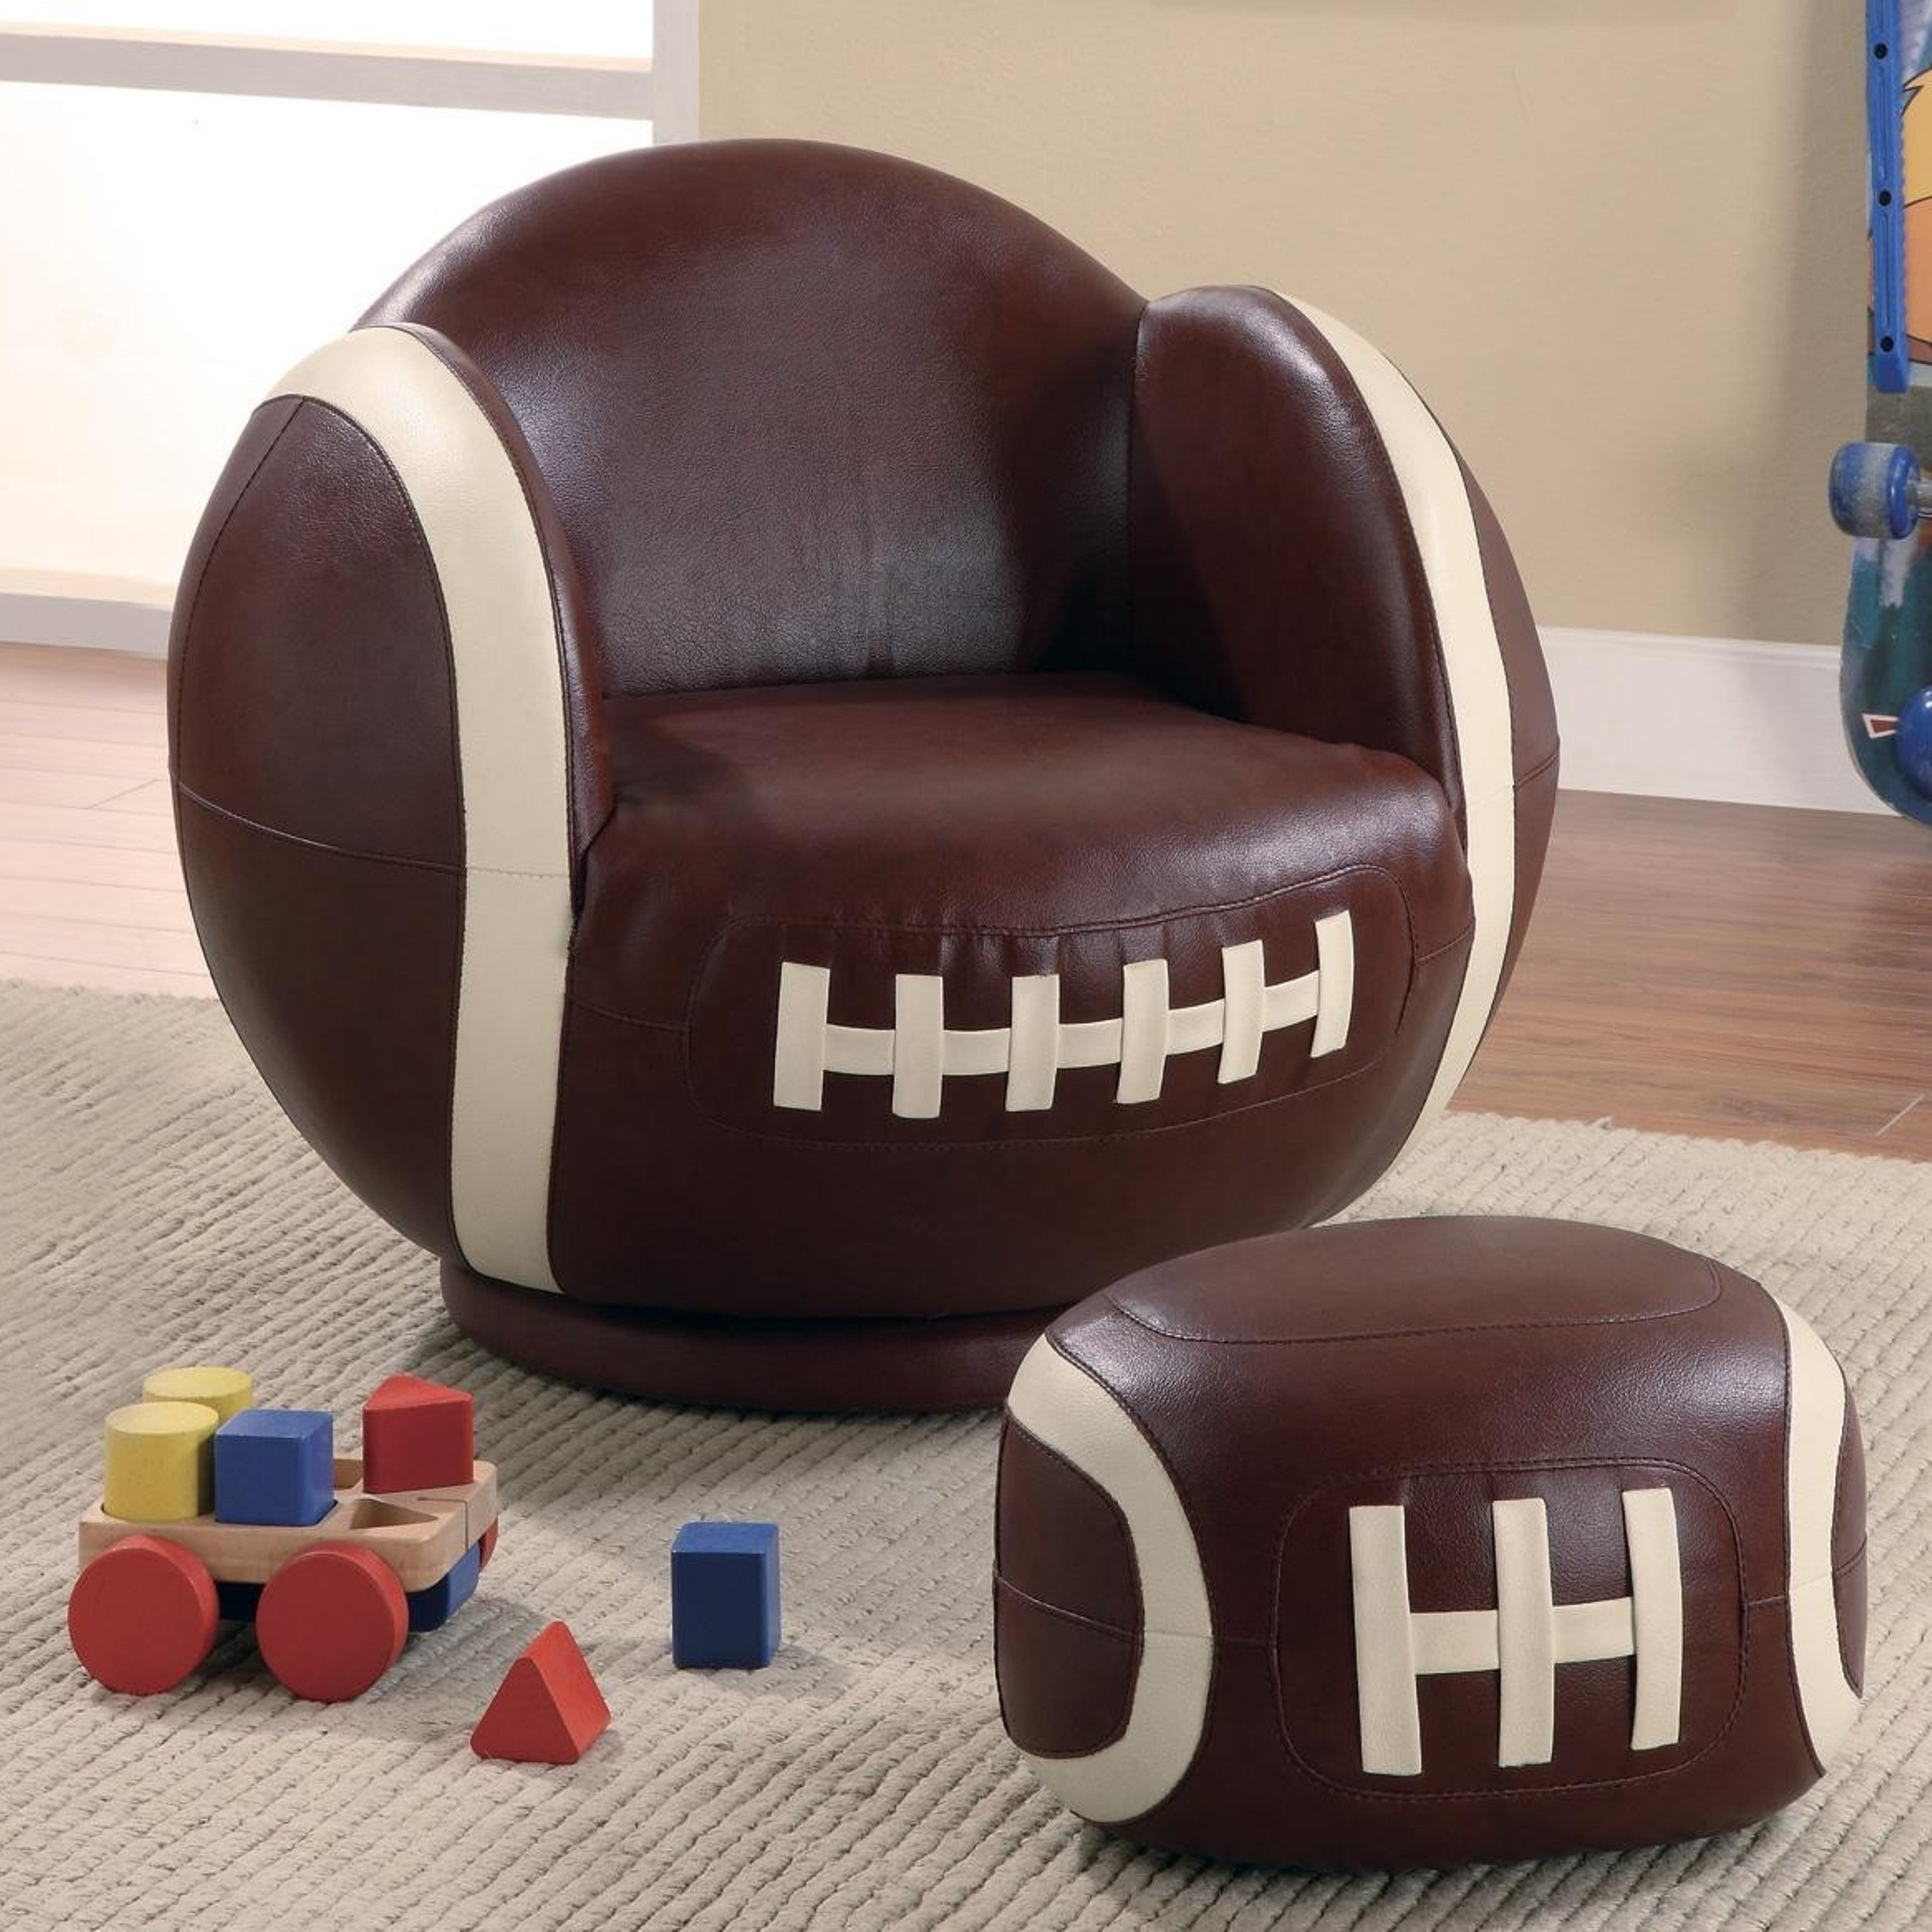 century and mid sawyer chair chairs by product fabric home today of club ottoman set ottomans shipping overstock christopher garden knight free modern